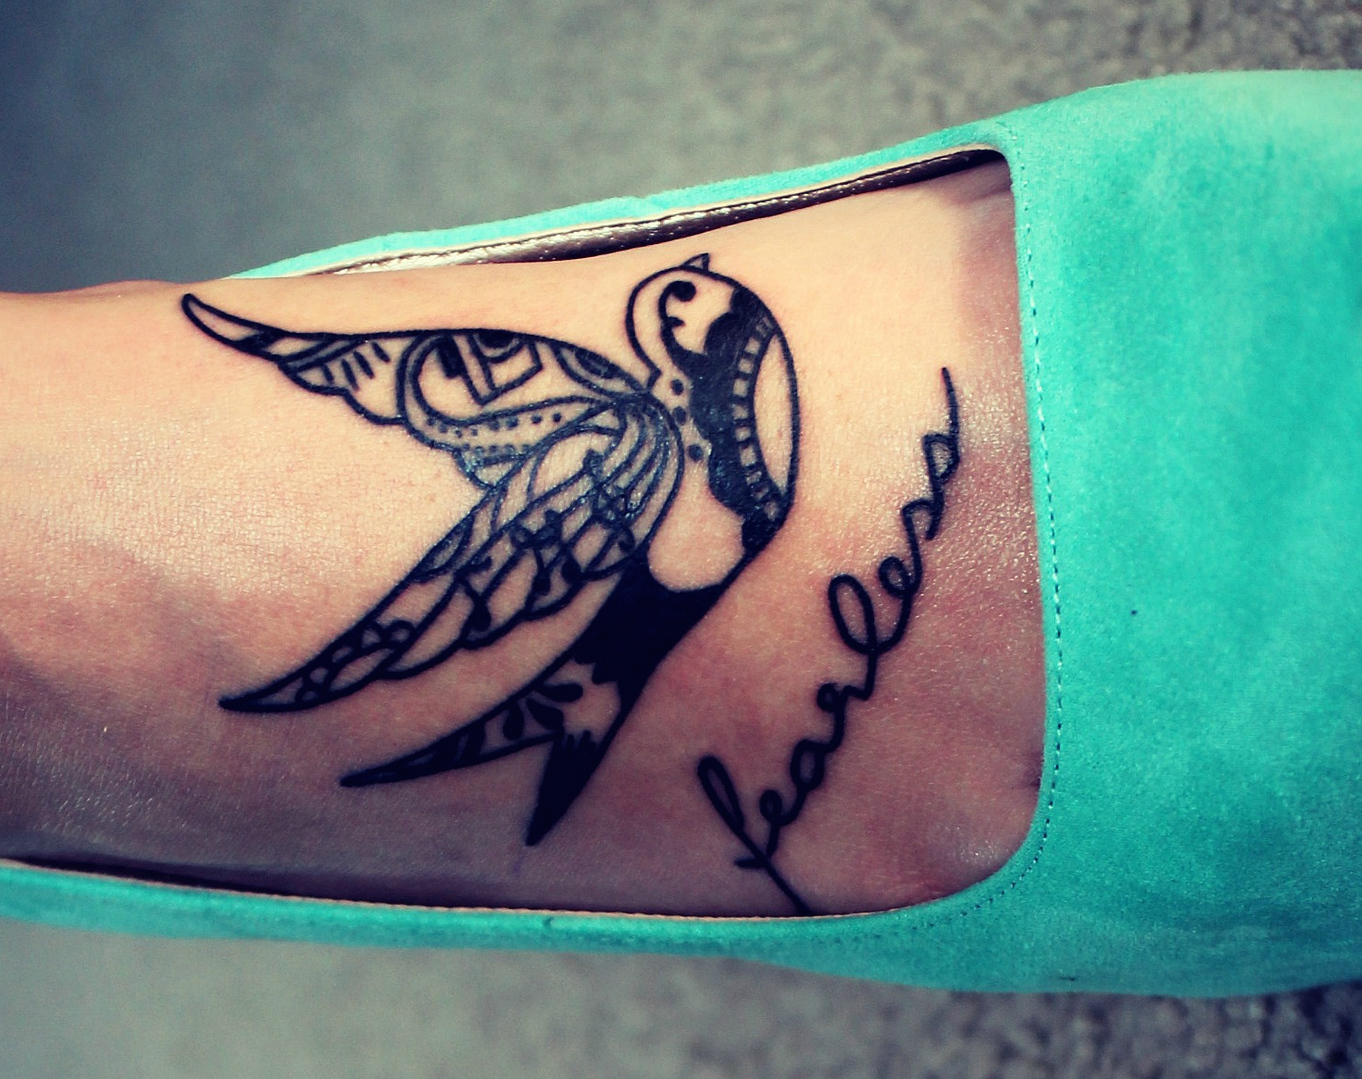 Best Tattoo Quotes About Life 17 Powerful One Word Tattoos That Prove A Single Word Can Make A